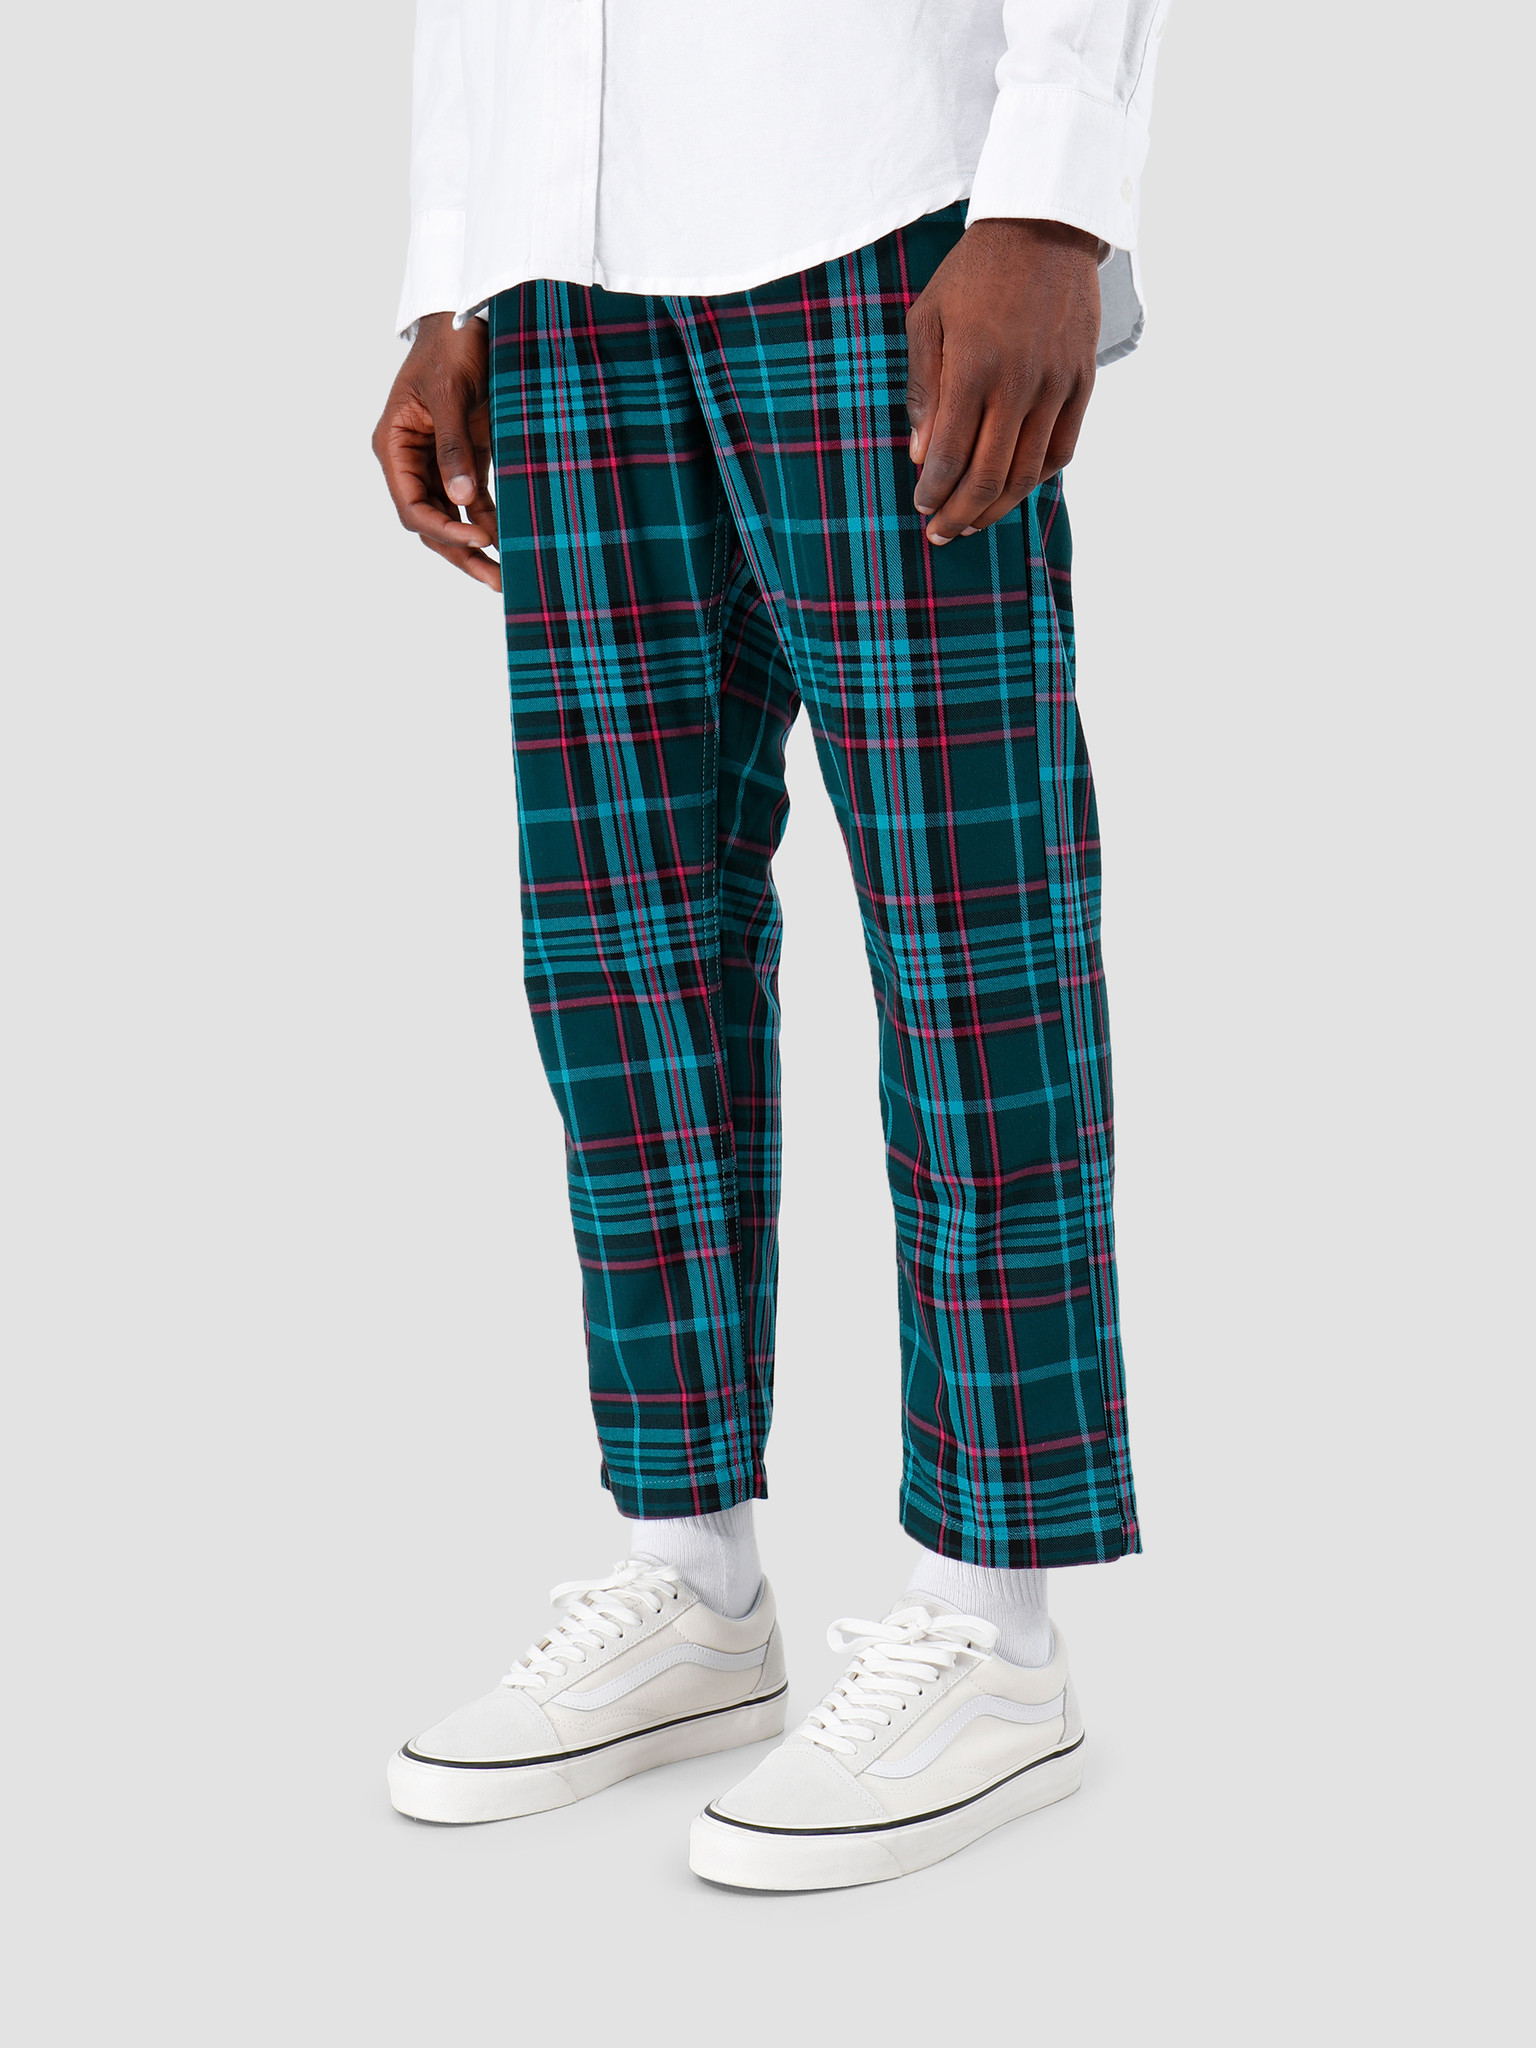 Obey Obey Straggler Plaid Flooded Pant TEA 142020126